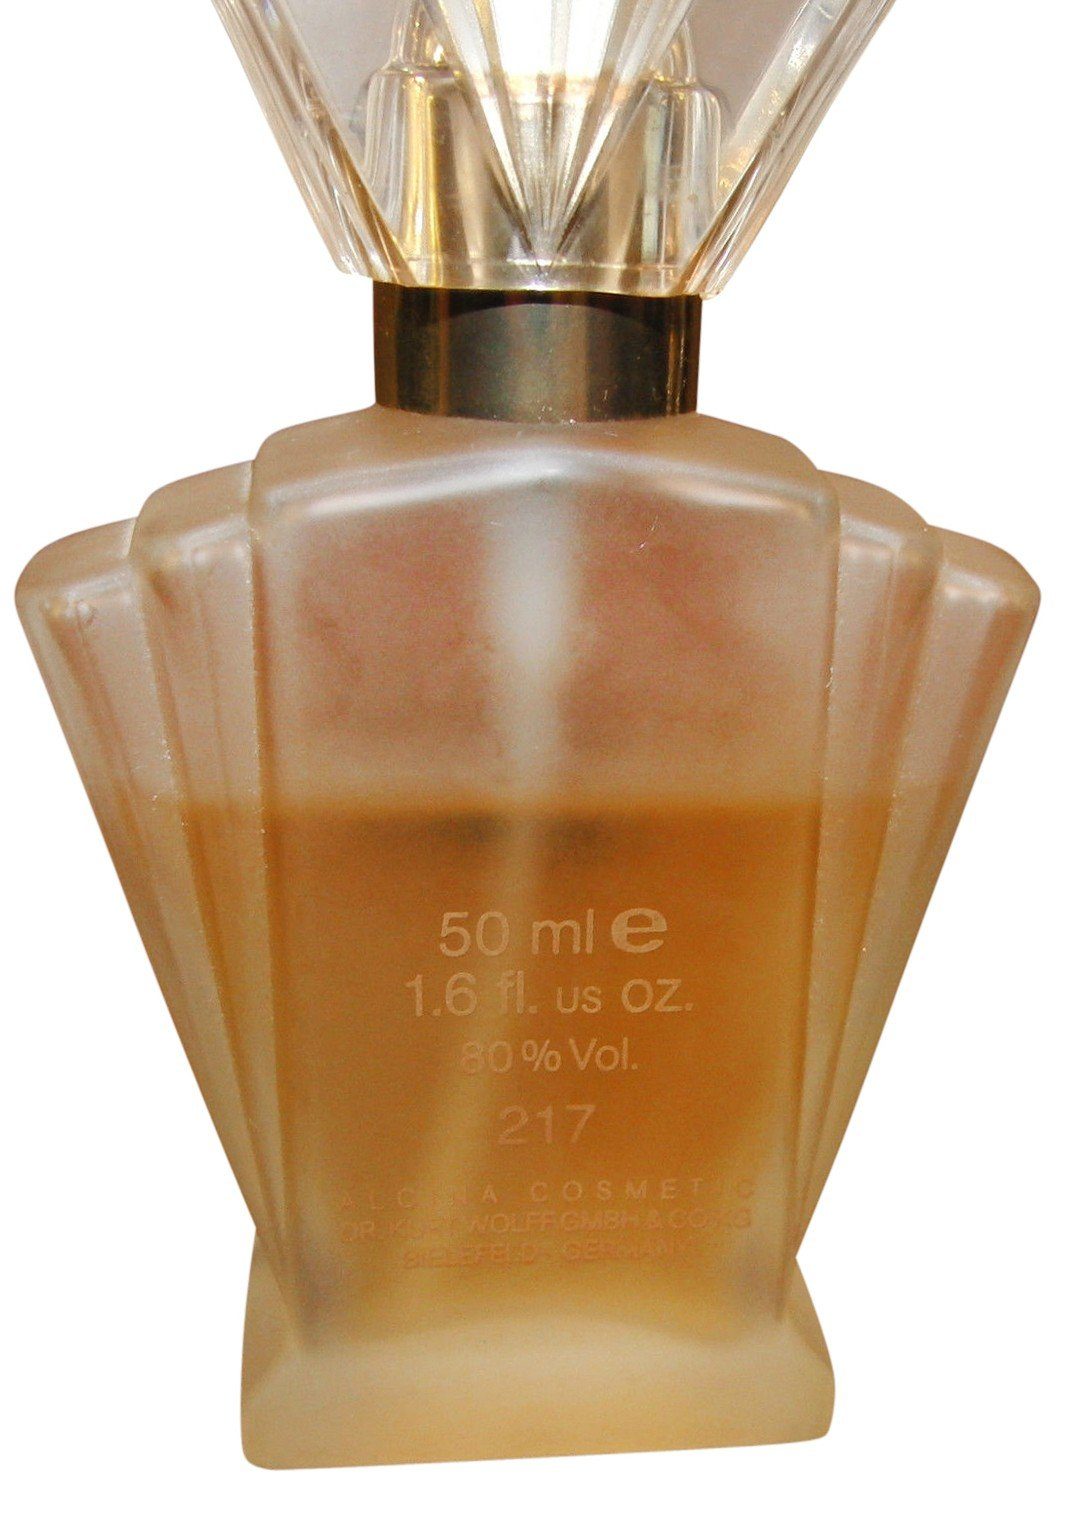 Photo De Toilette Alcina Lady A Eau De Toilette Reviews And Rating